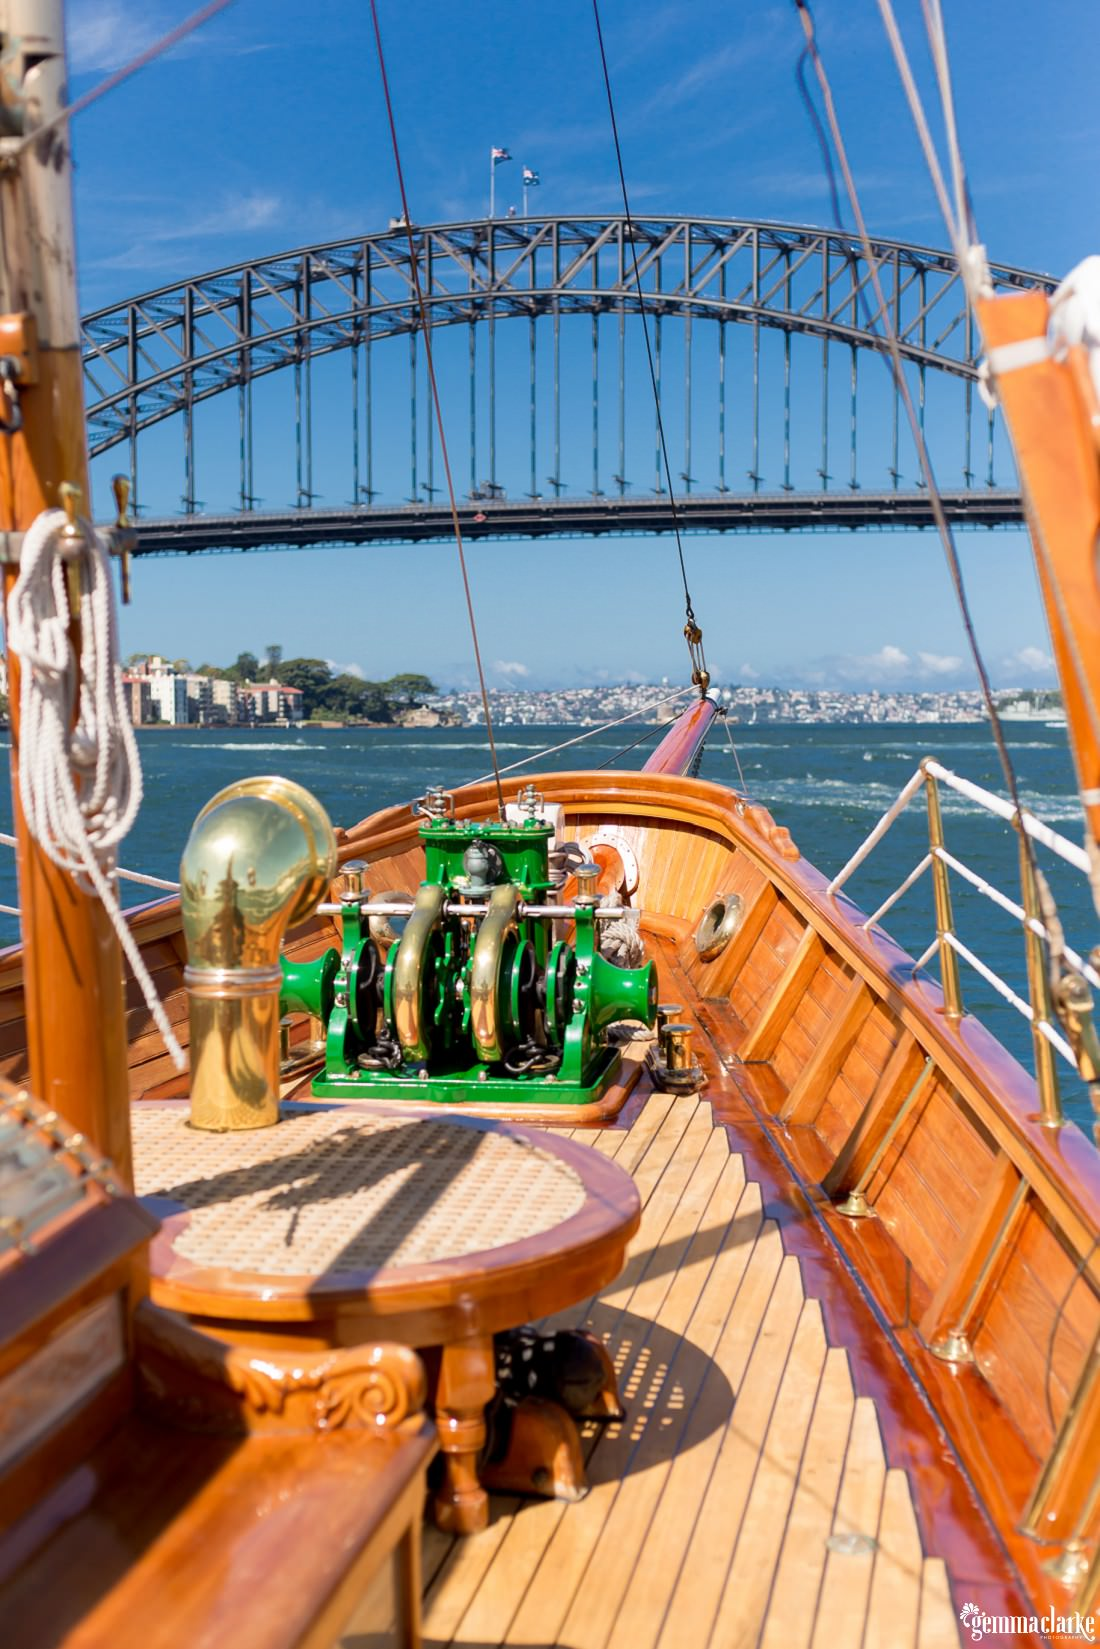 Sydney Harbour from the front of a boat that is about to pass underneath the Sydney Harbour Bridge